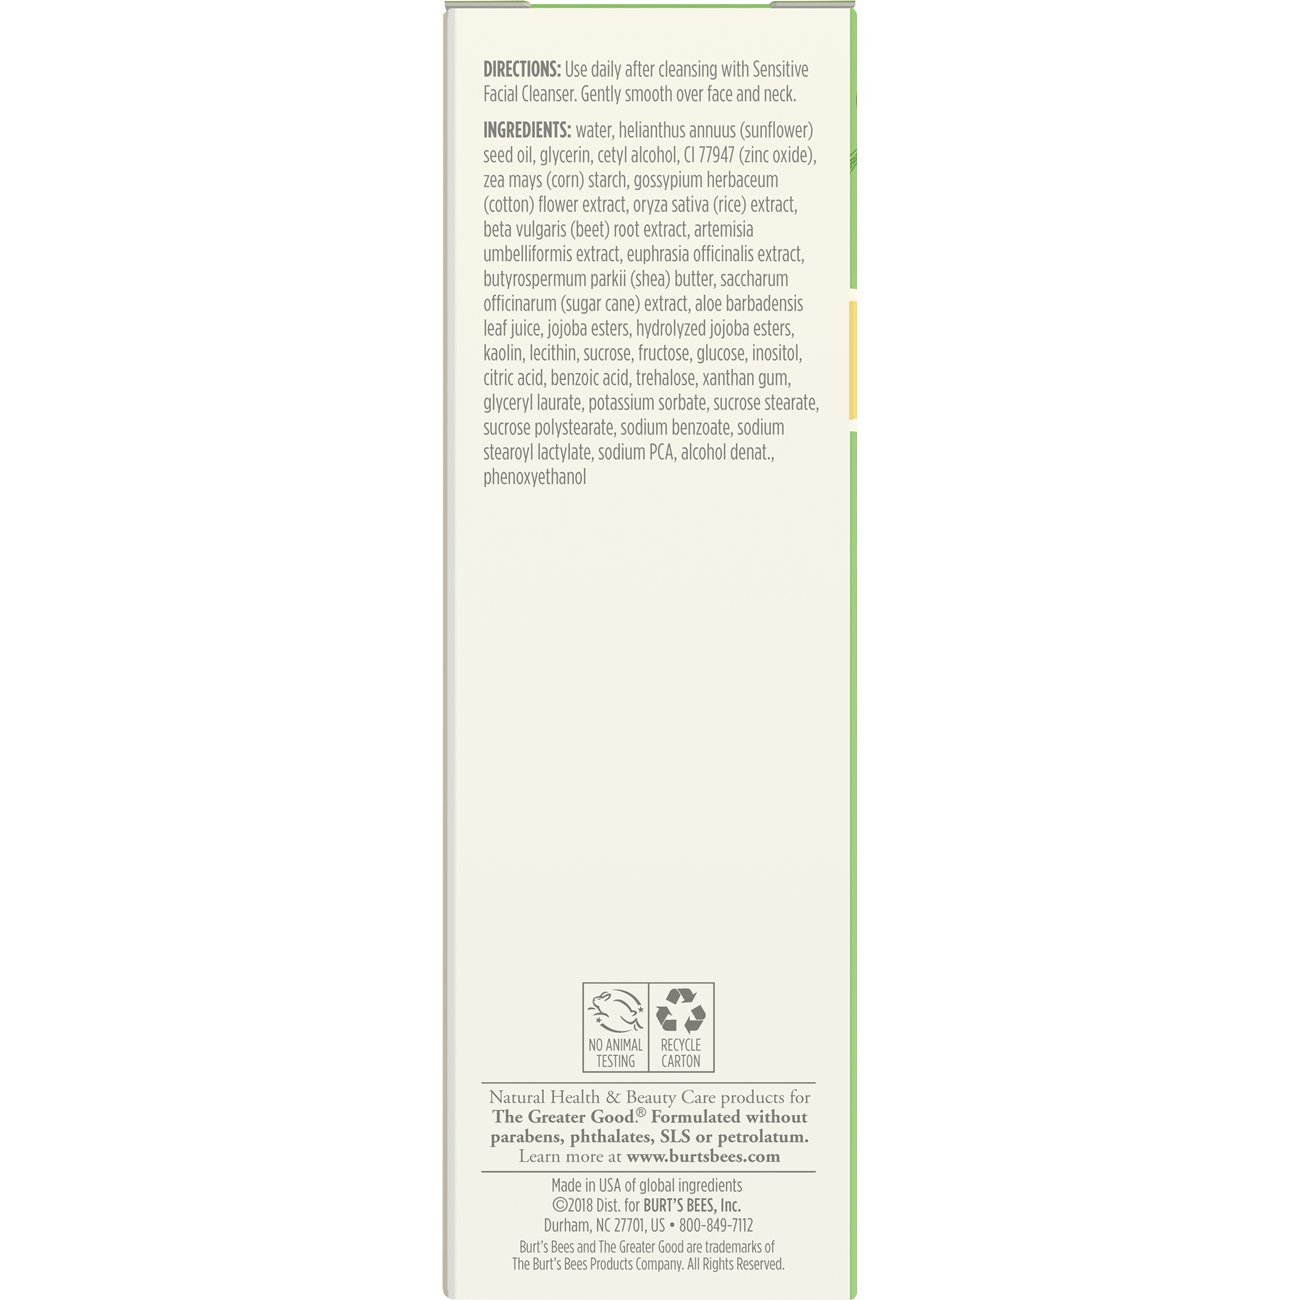 Burt's Bees Daily Face Moisturizer for Sensitive Skin, 1.8 Ounces by Burt's Bees (Image #4)